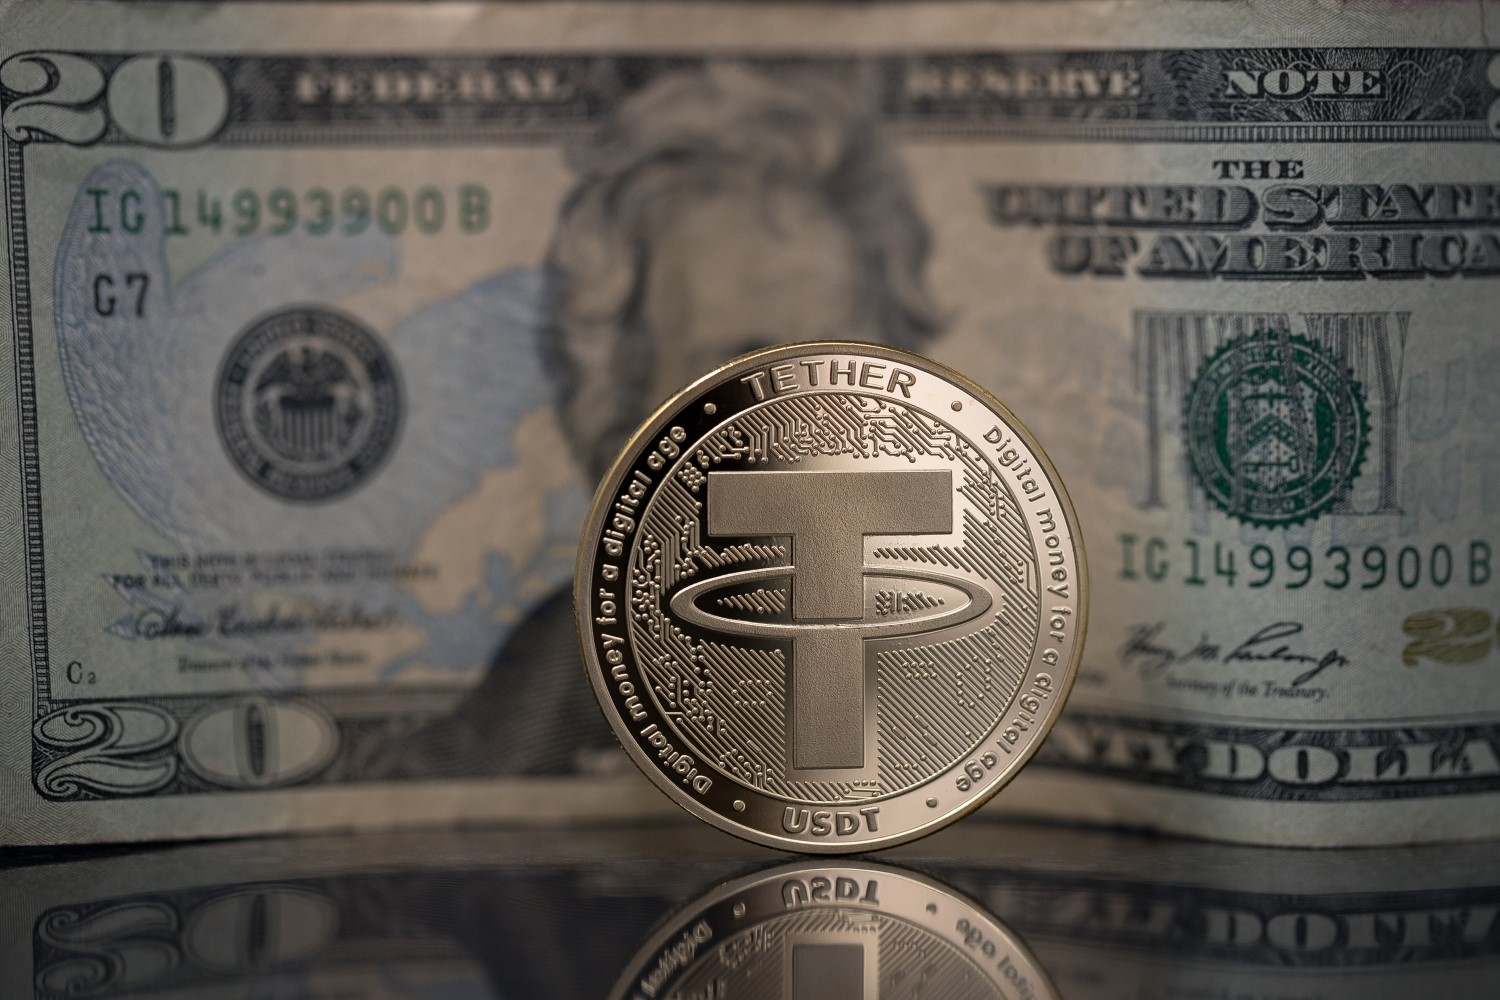 Tether Says Its USDT Stablecoin May Not Be Backed By Fiat Alone